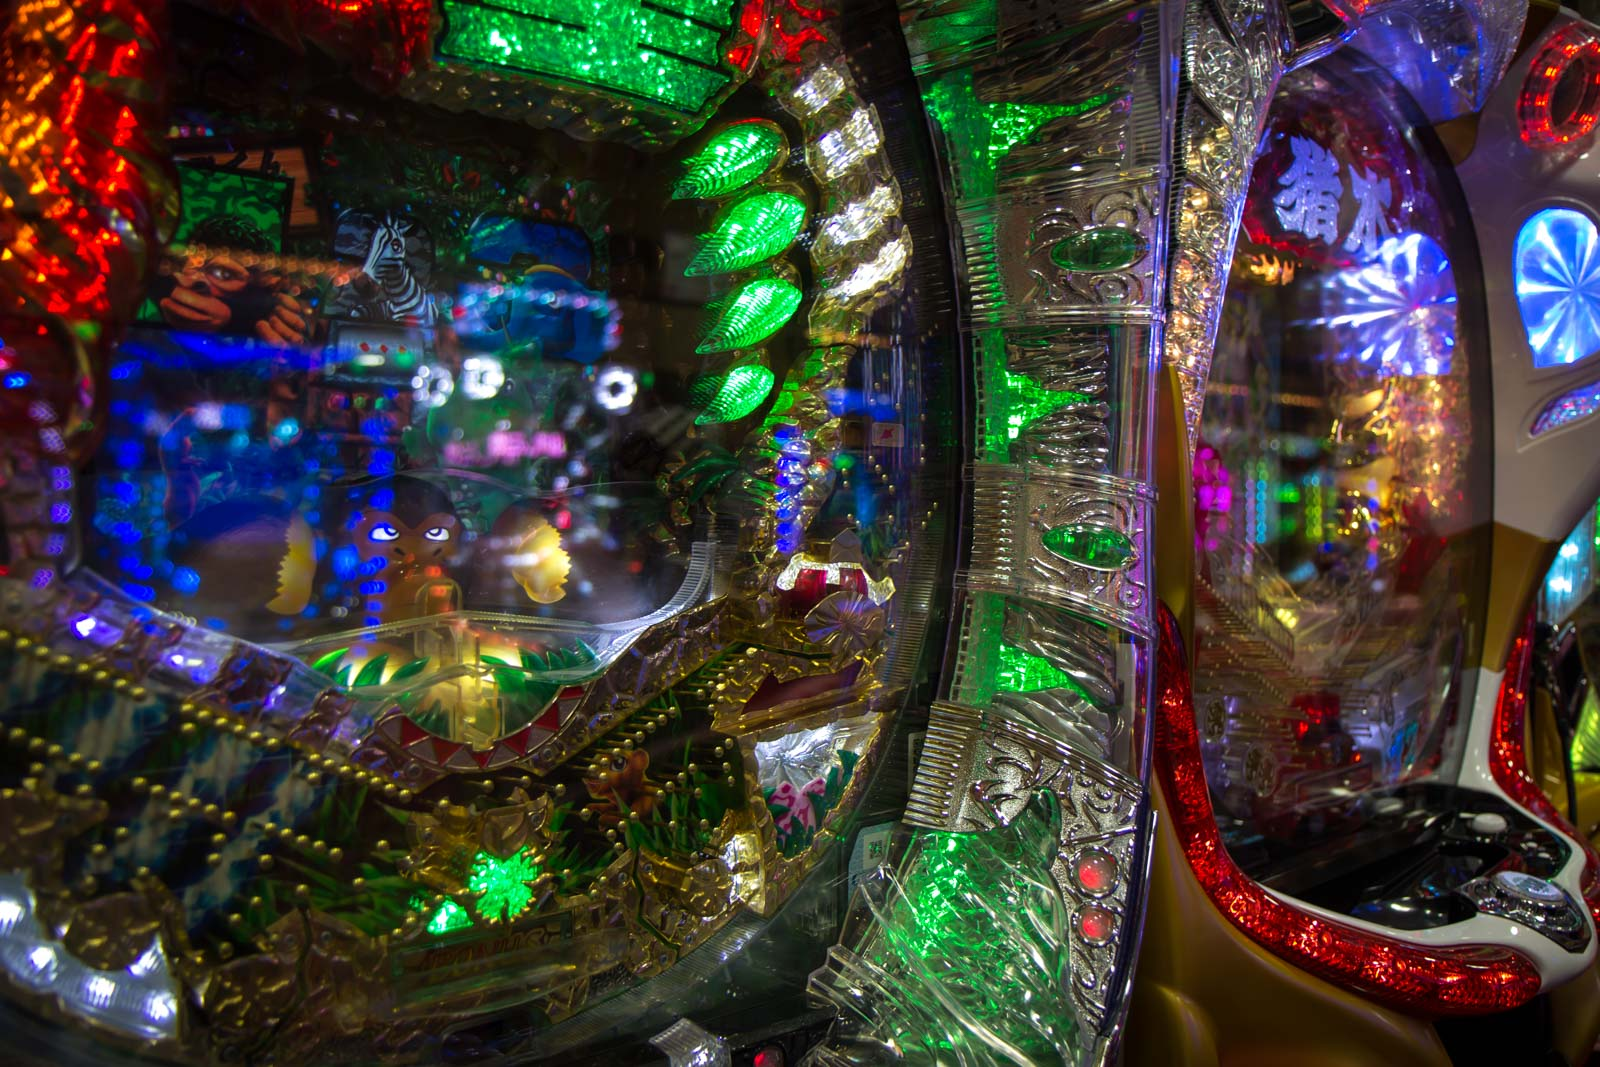 pachinko, japan, game with silver balls, gambling in japan, pachinko parlours